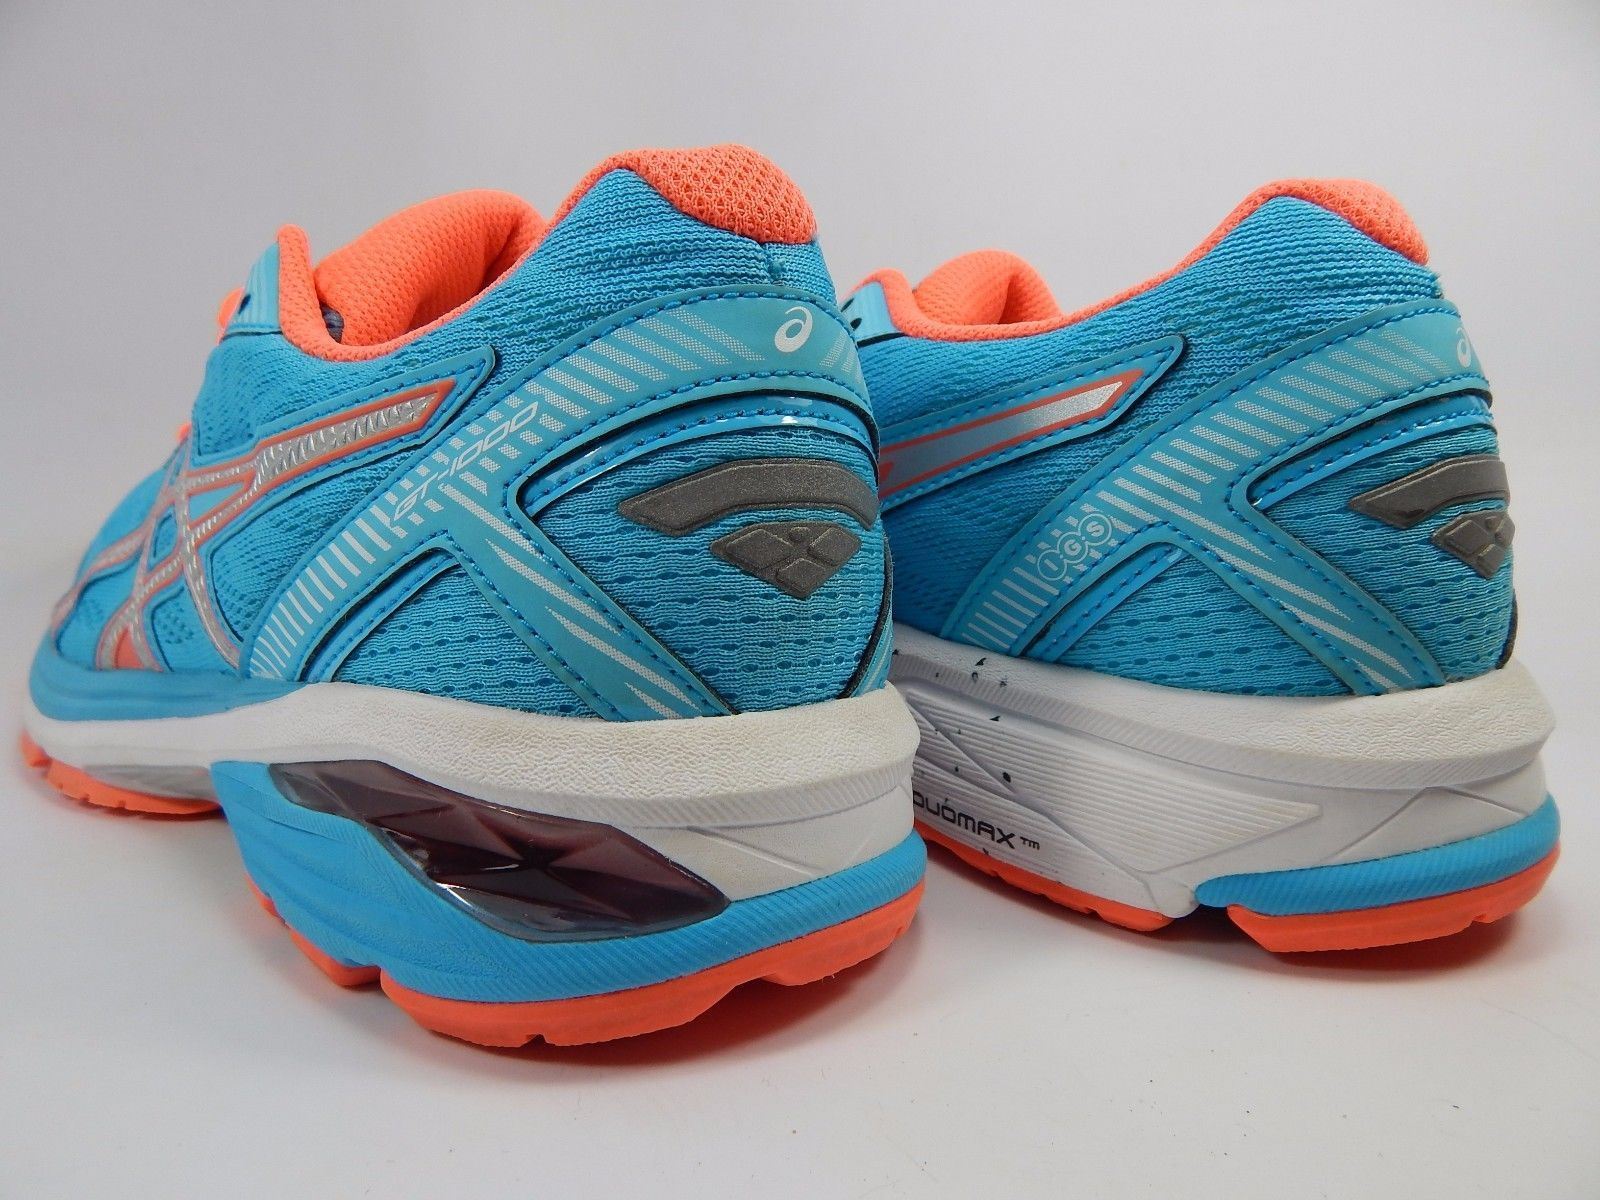 Asics GT 1000 v 5 Women's Running Shoes Sz US 8.5 M (B) EU 40 Blue Orange T6A8N